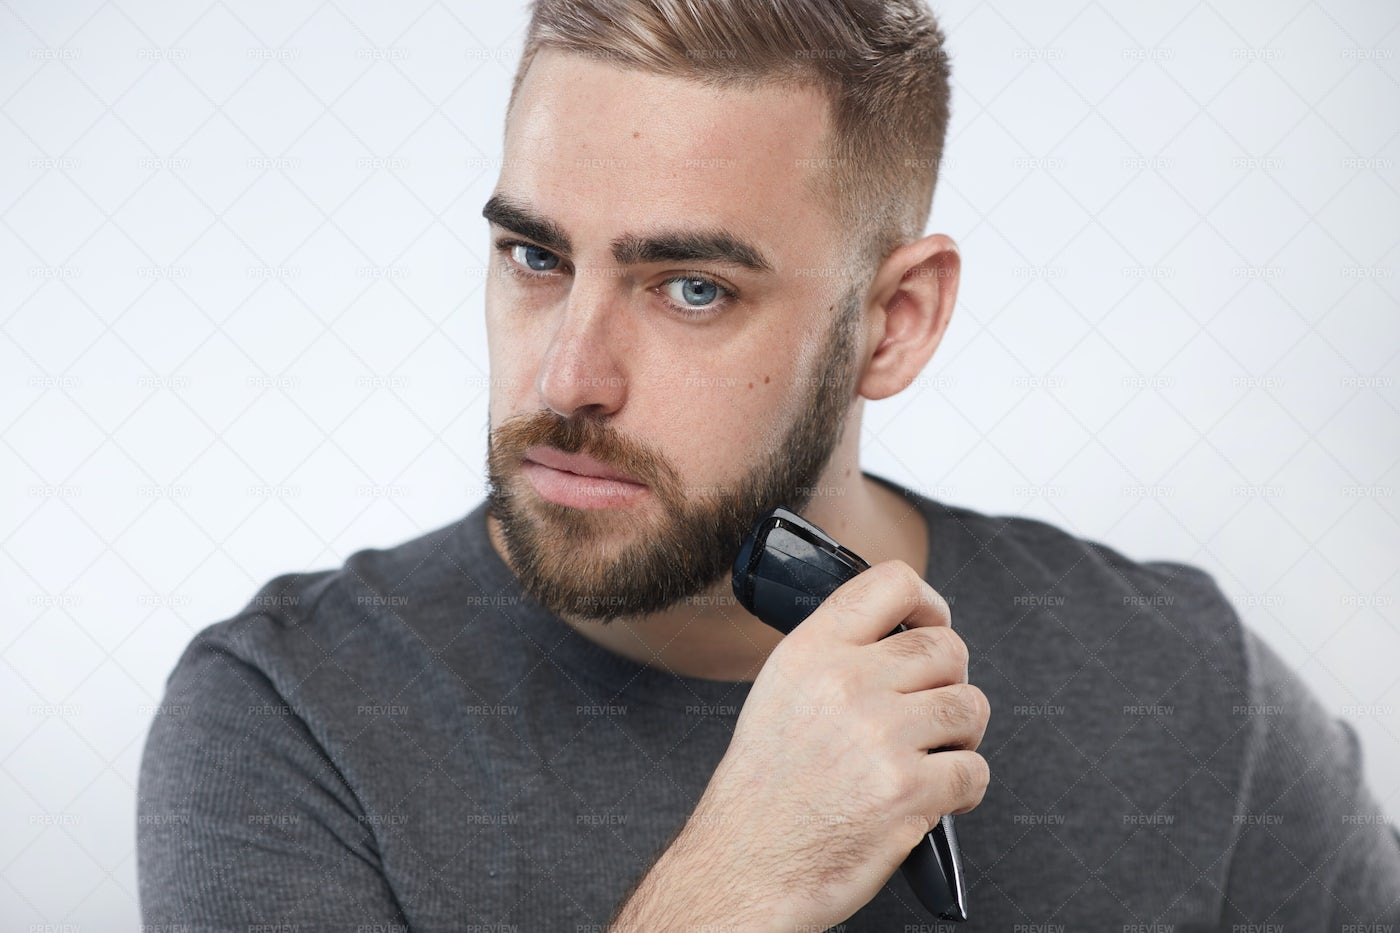 Young Man Trimming Beard: Stock Photos